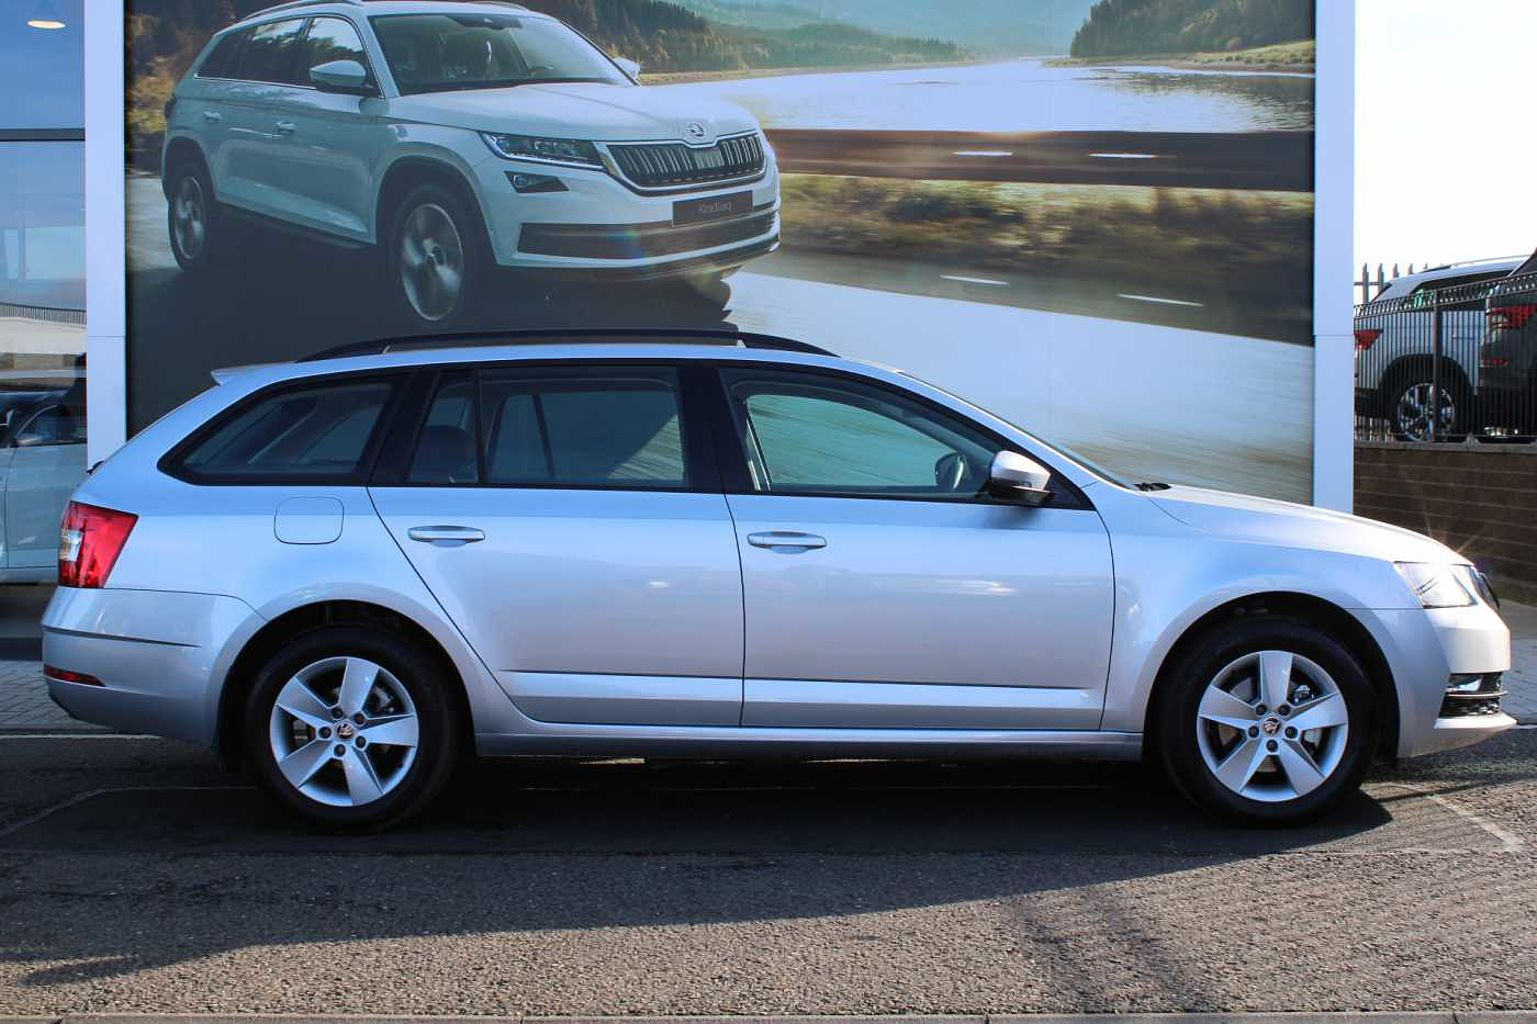 ŠKODA Octavia Estate (2017) 1.0 TSI (115ps) SE DSG